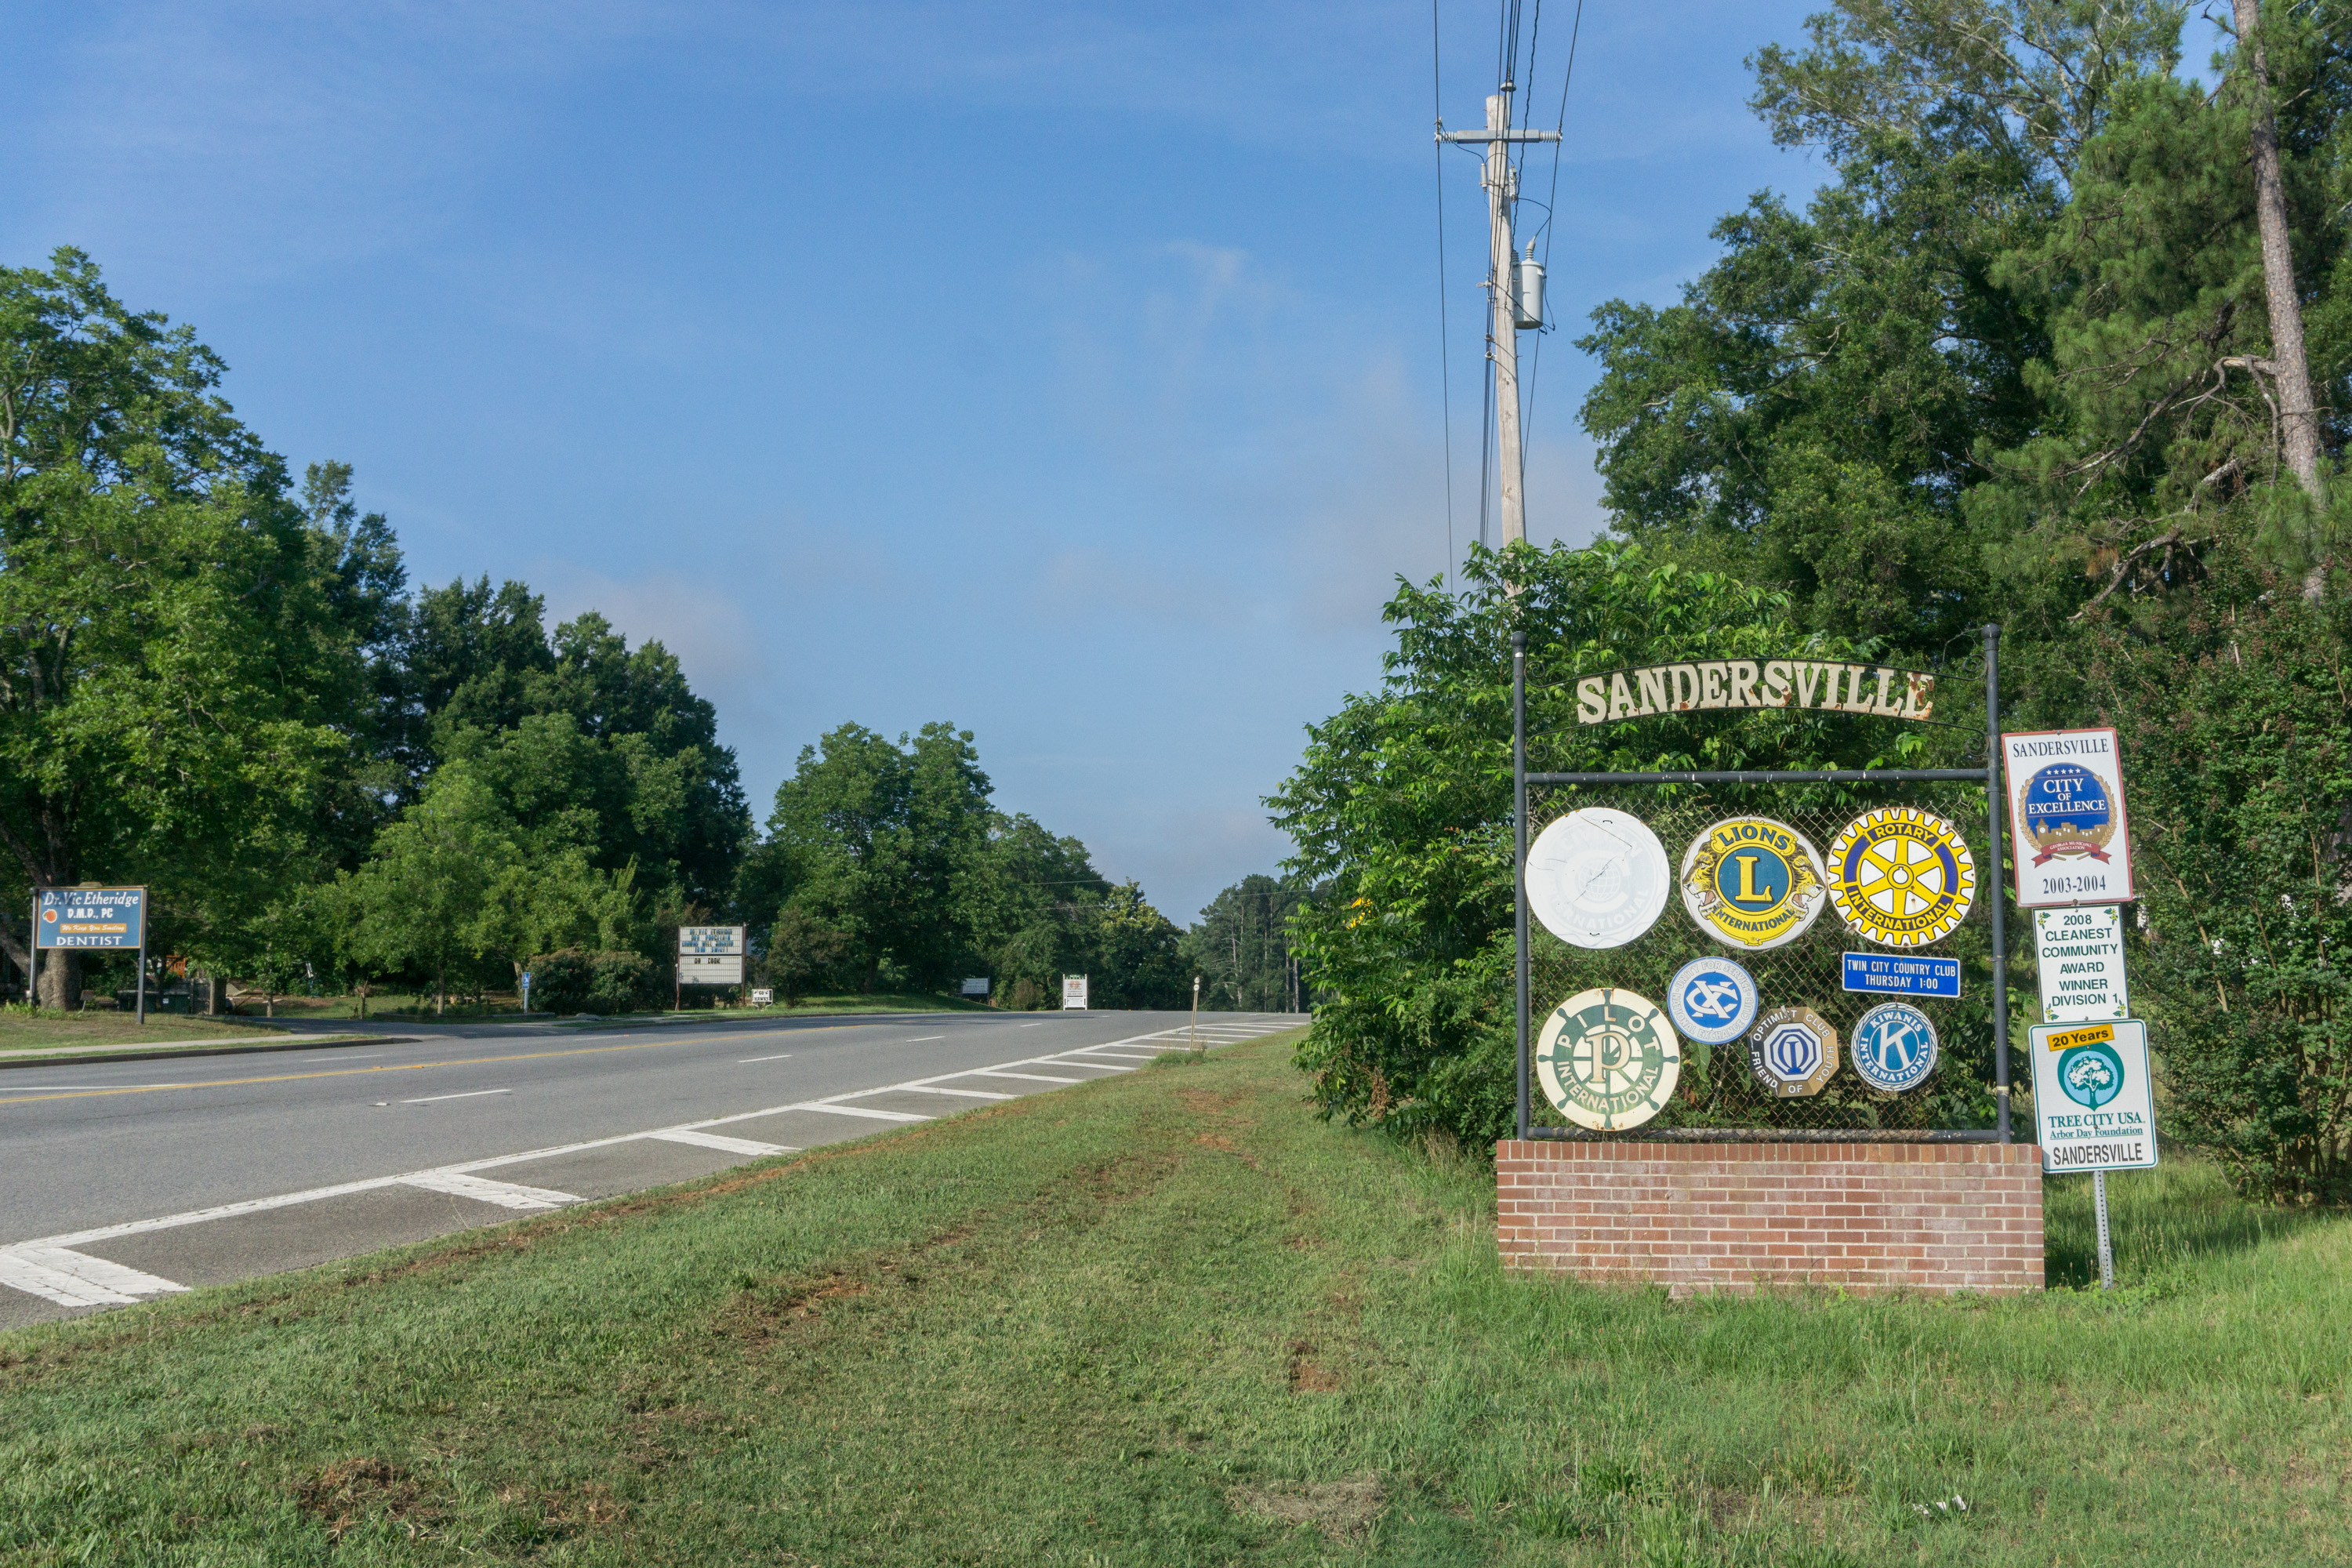 Washington_Sandersville_sign1